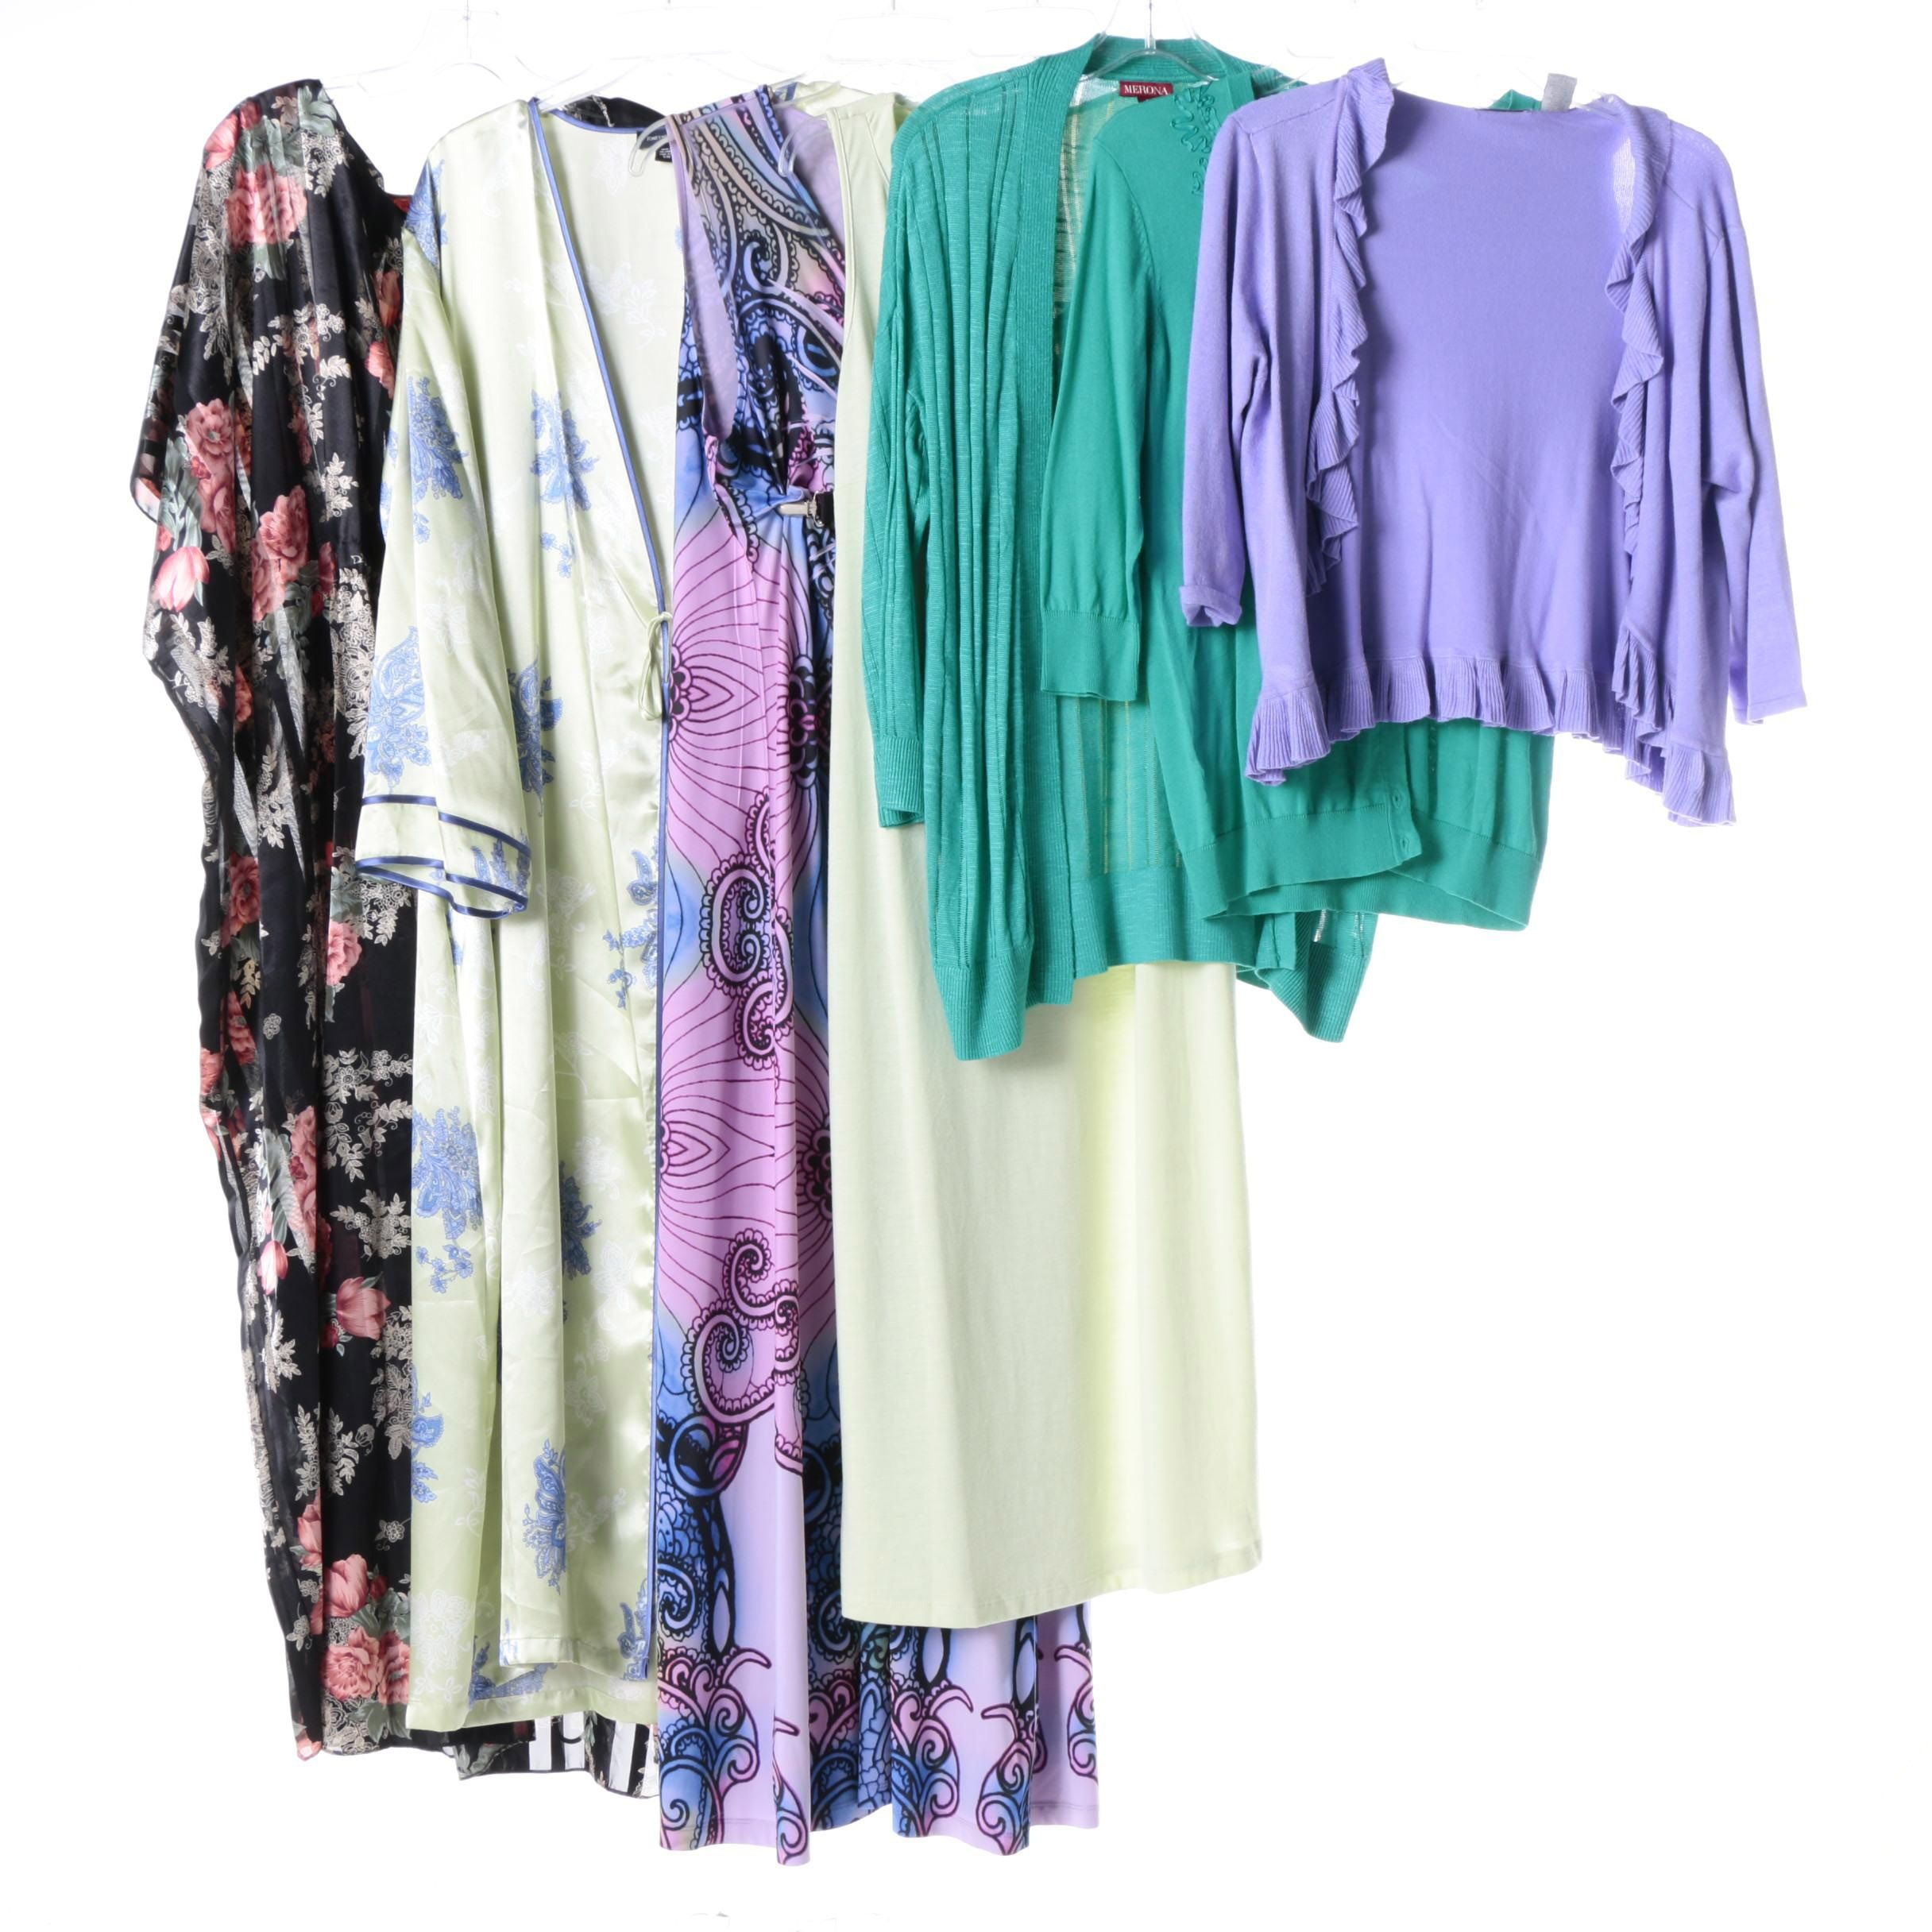 Women's Cardigans, Nightgowns and Loungewear